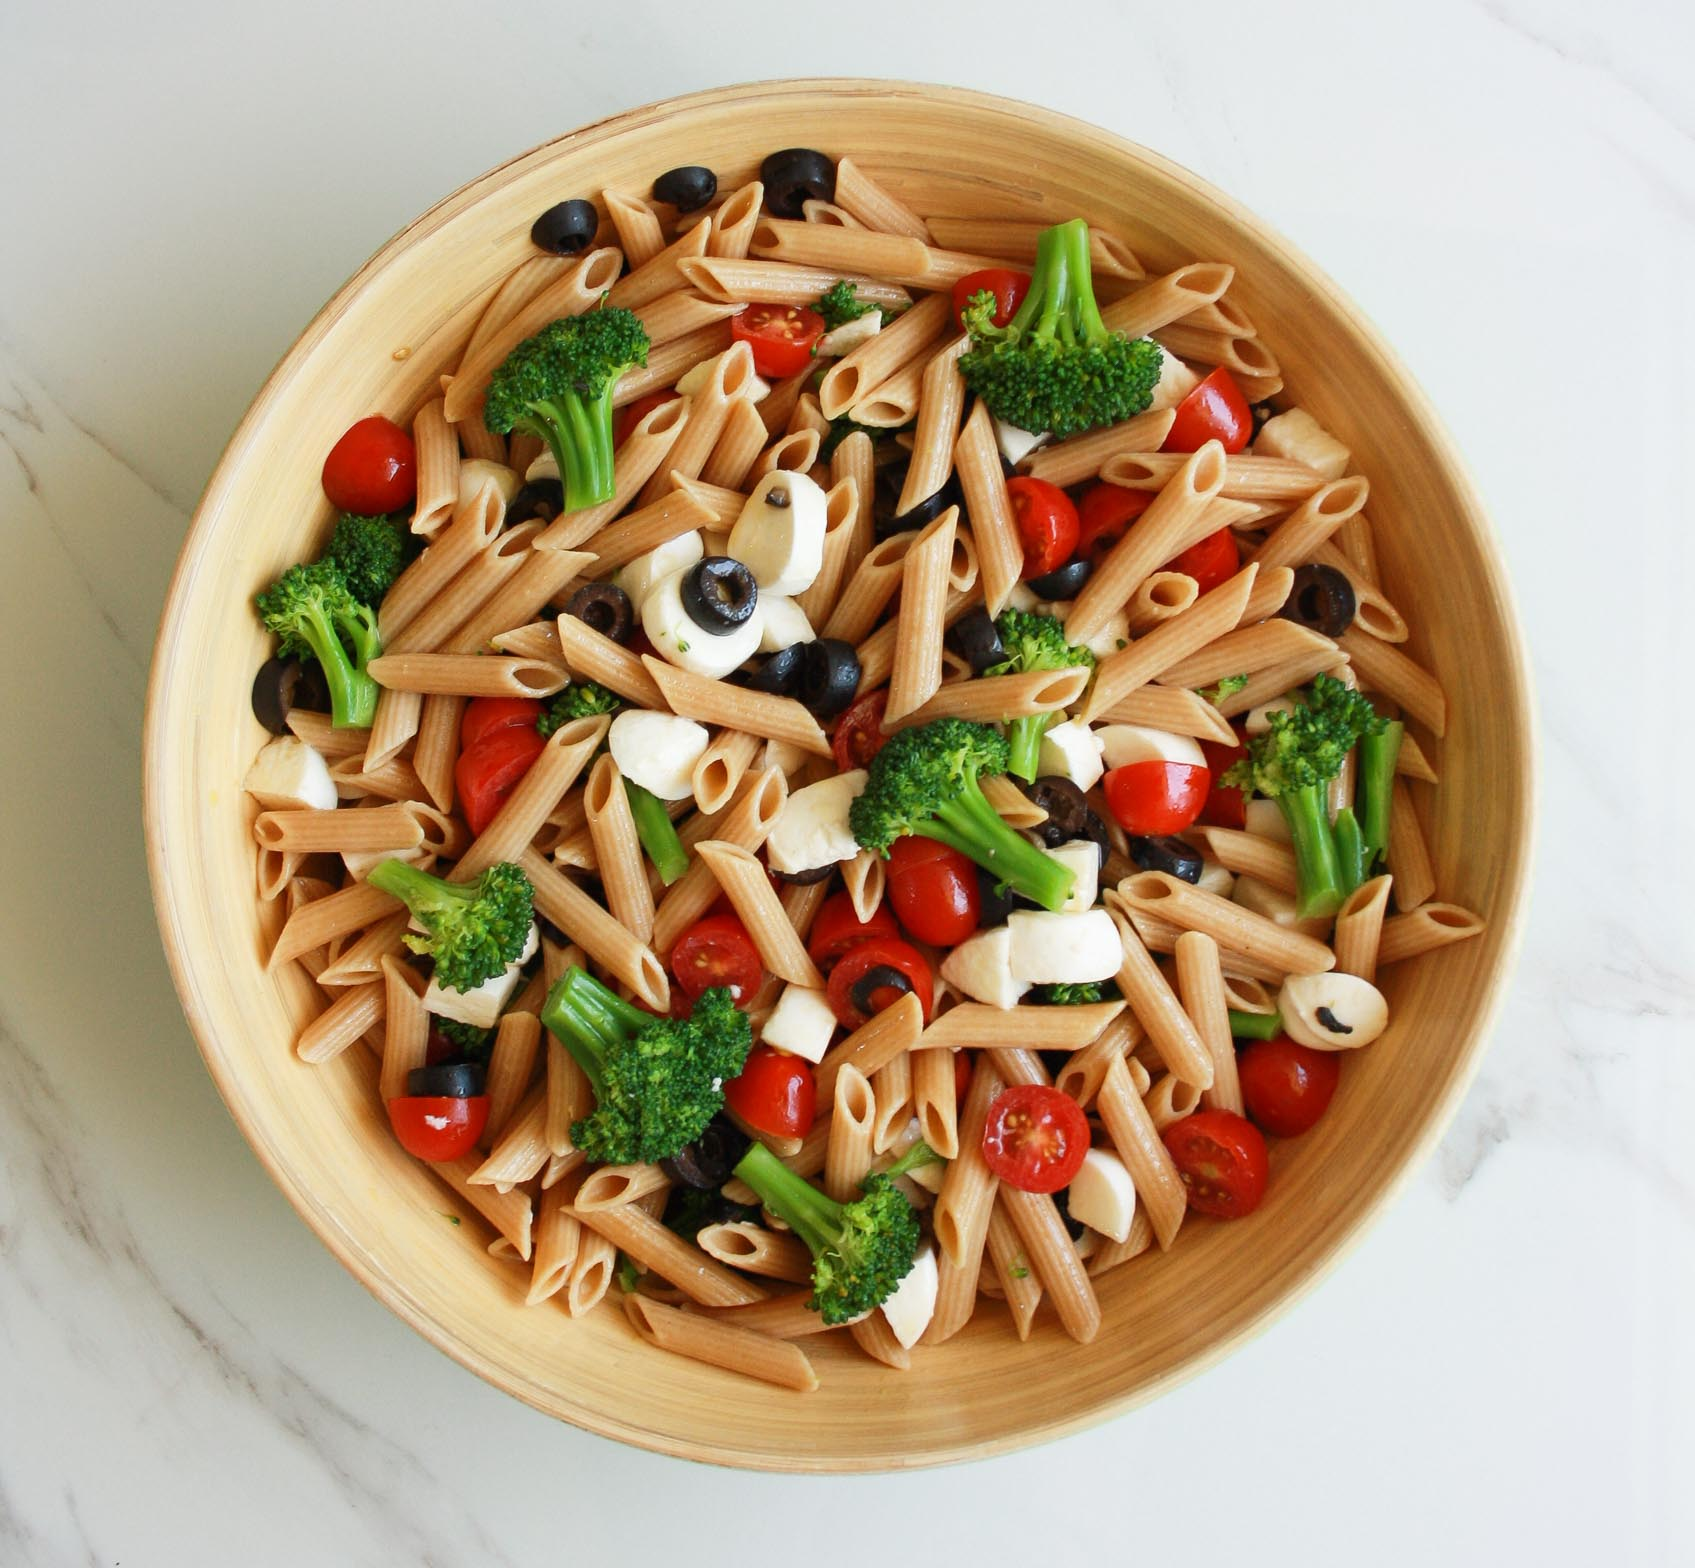 Whole wheat penne pasta salad in a big bowl with tomatoes, broccoli, mozzarella and black olives